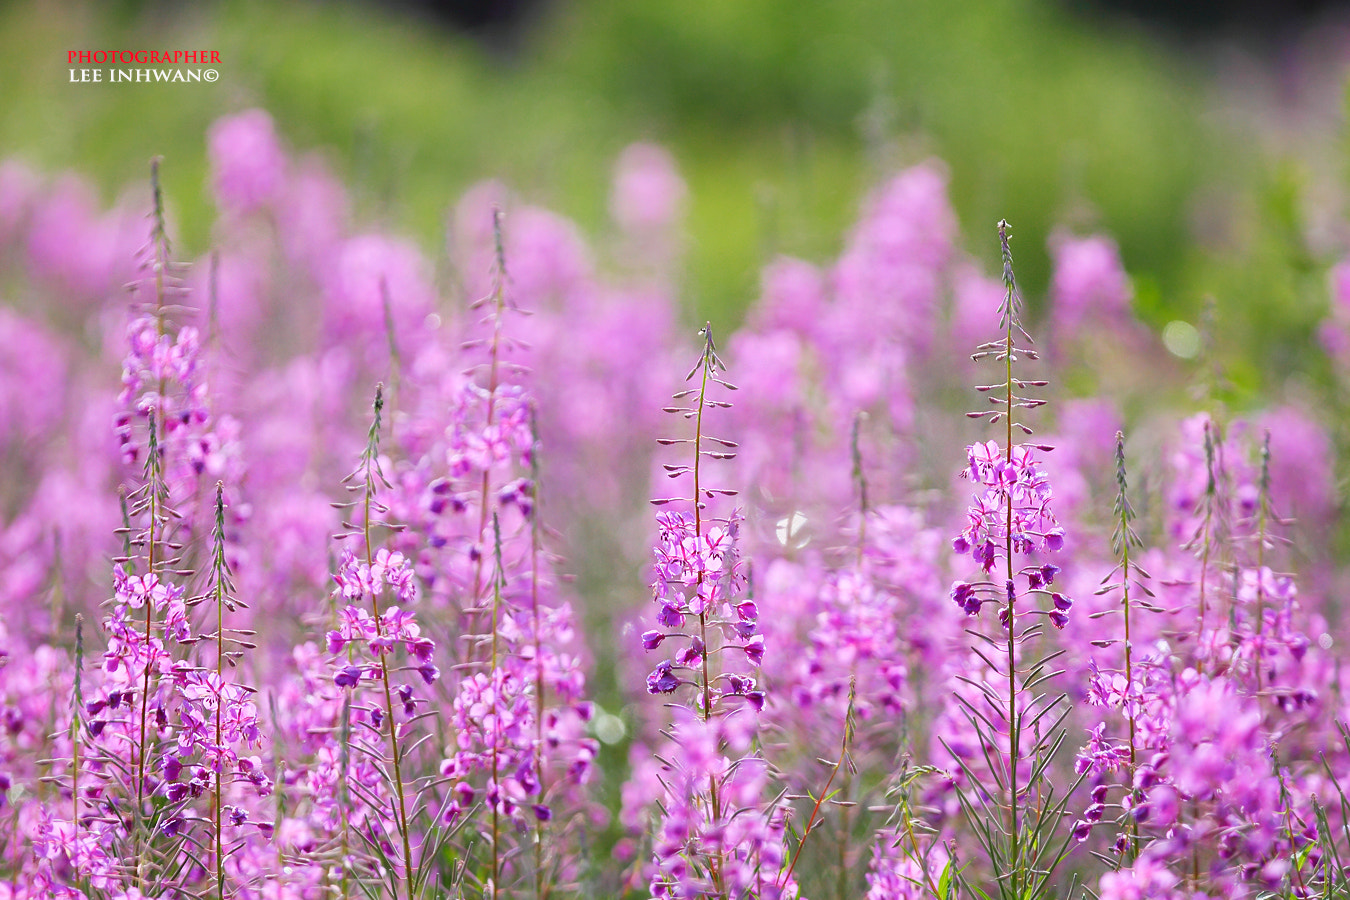 Photograph Group of Fireweed by LEE INHWAN on 500px